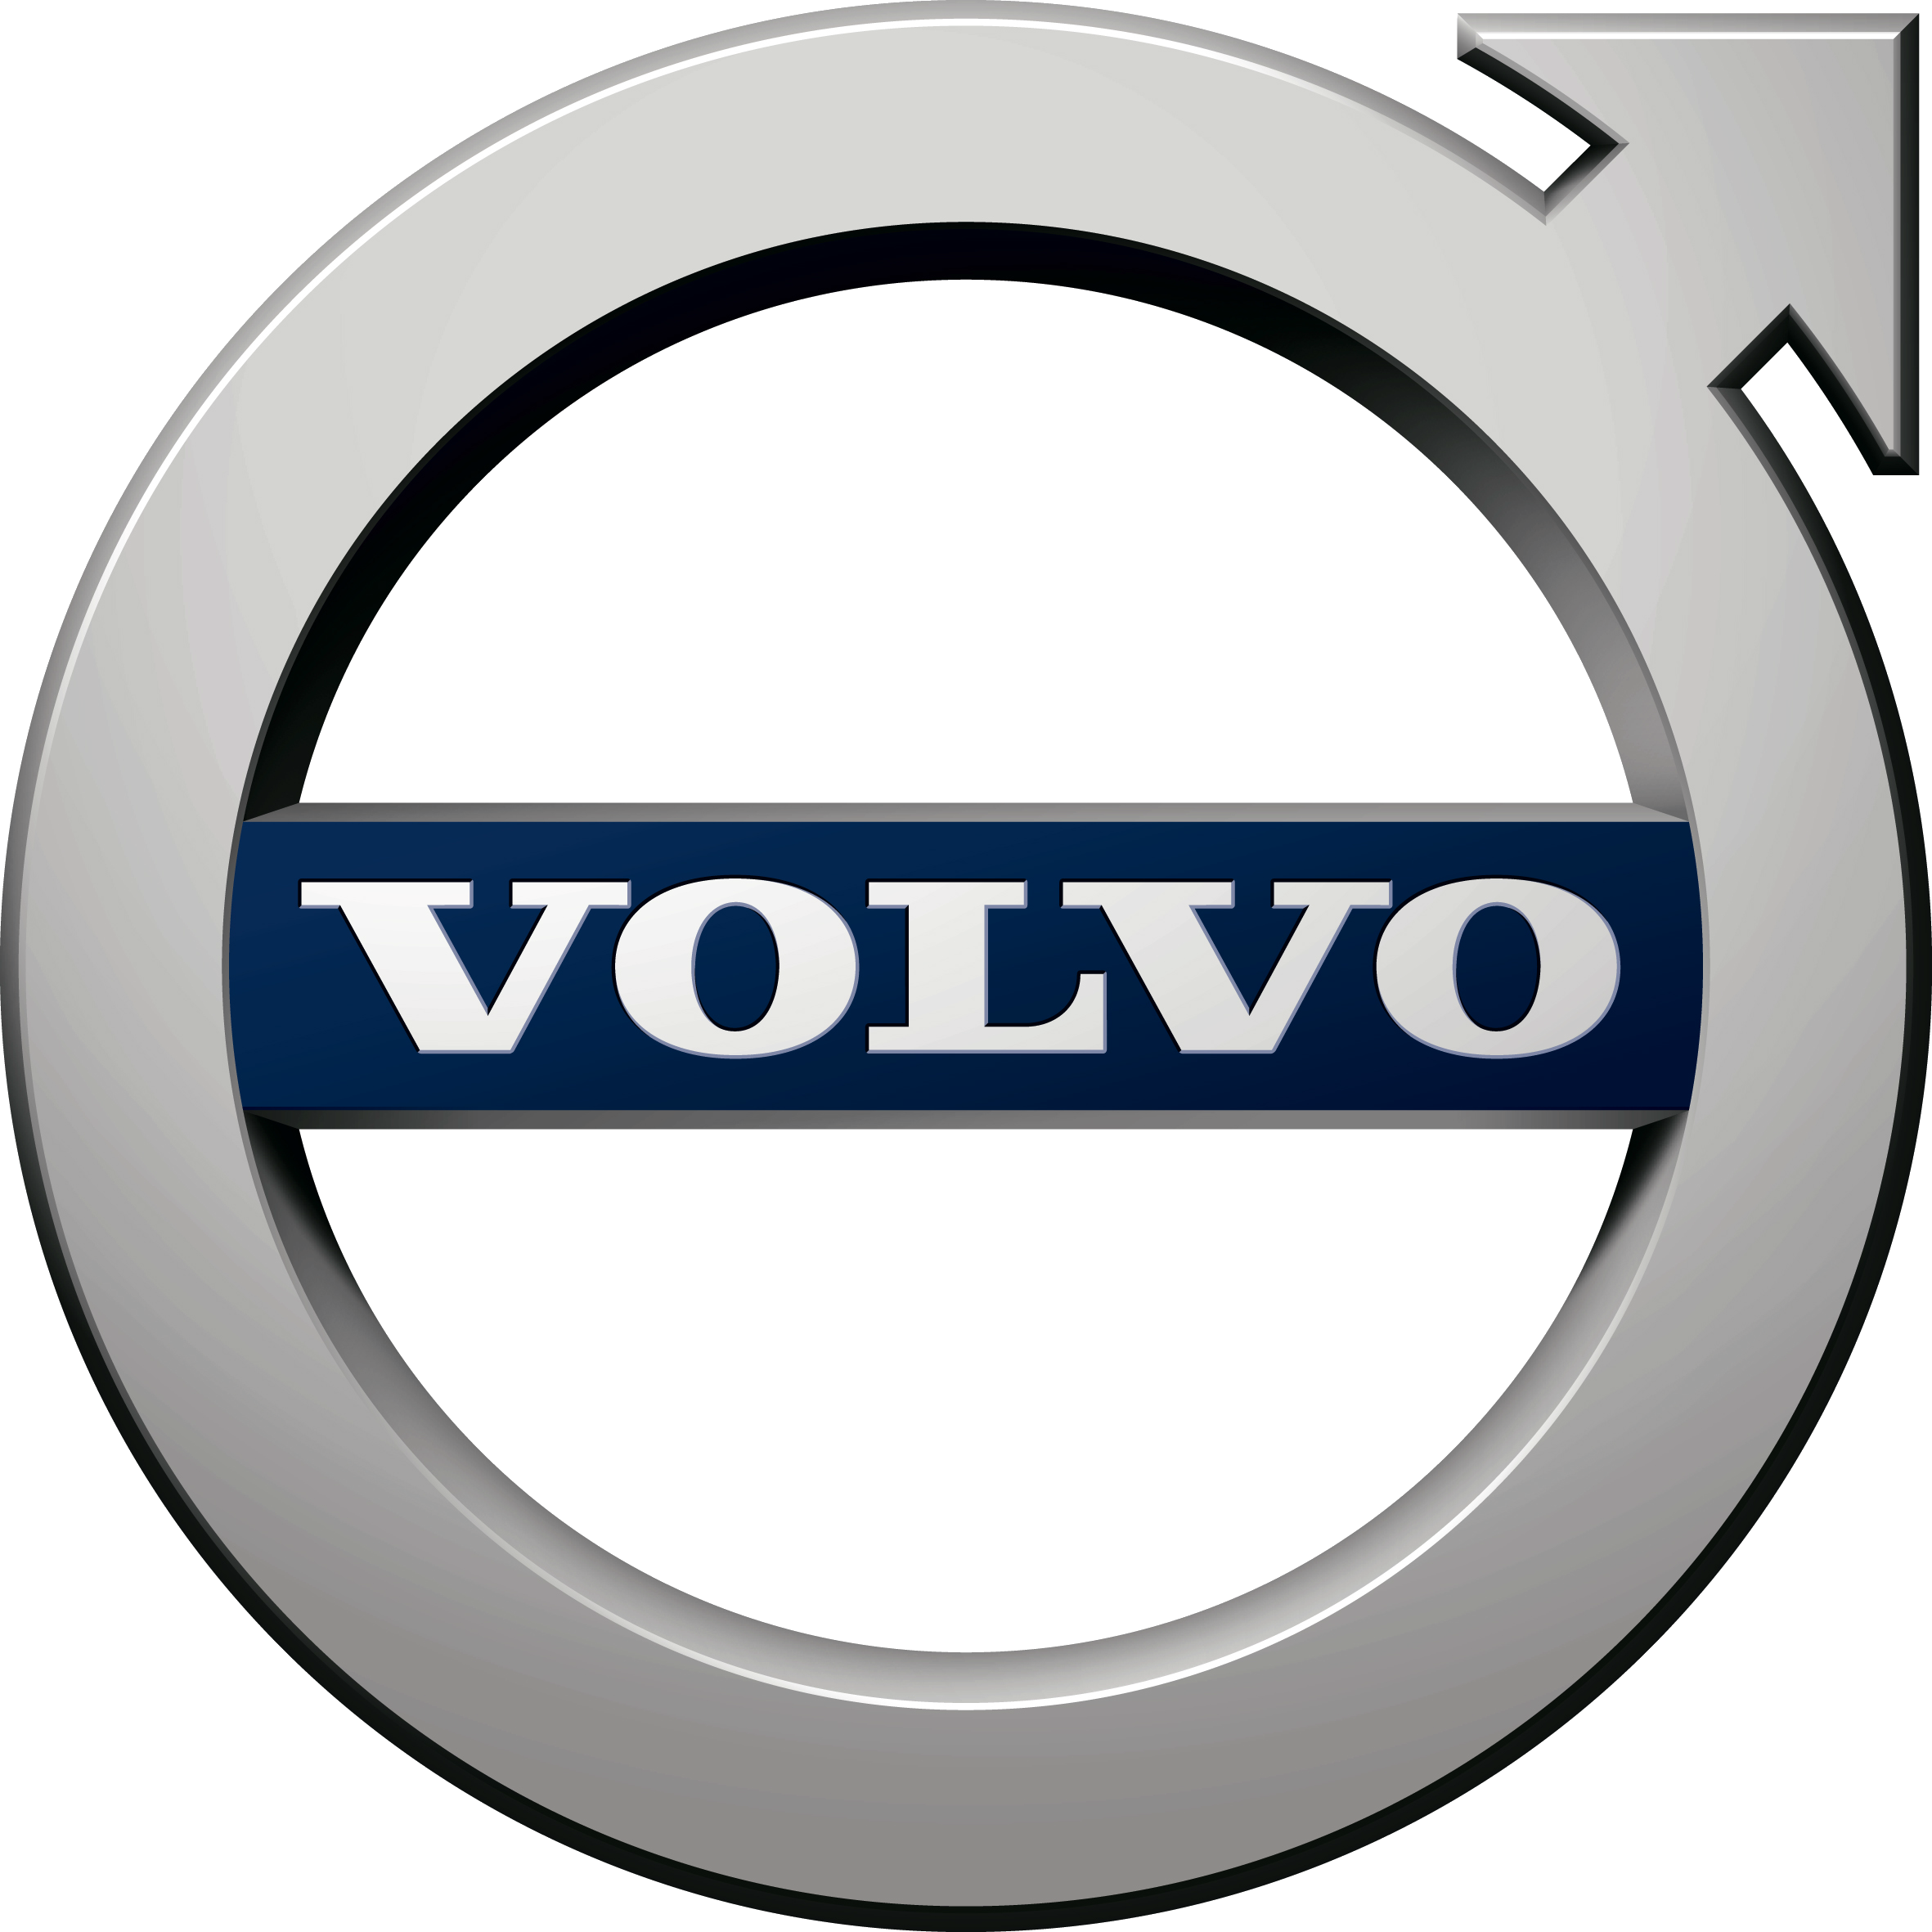 Volvo logo volvo car symbol meaning and history car brand names volvo logo biocorpaavc